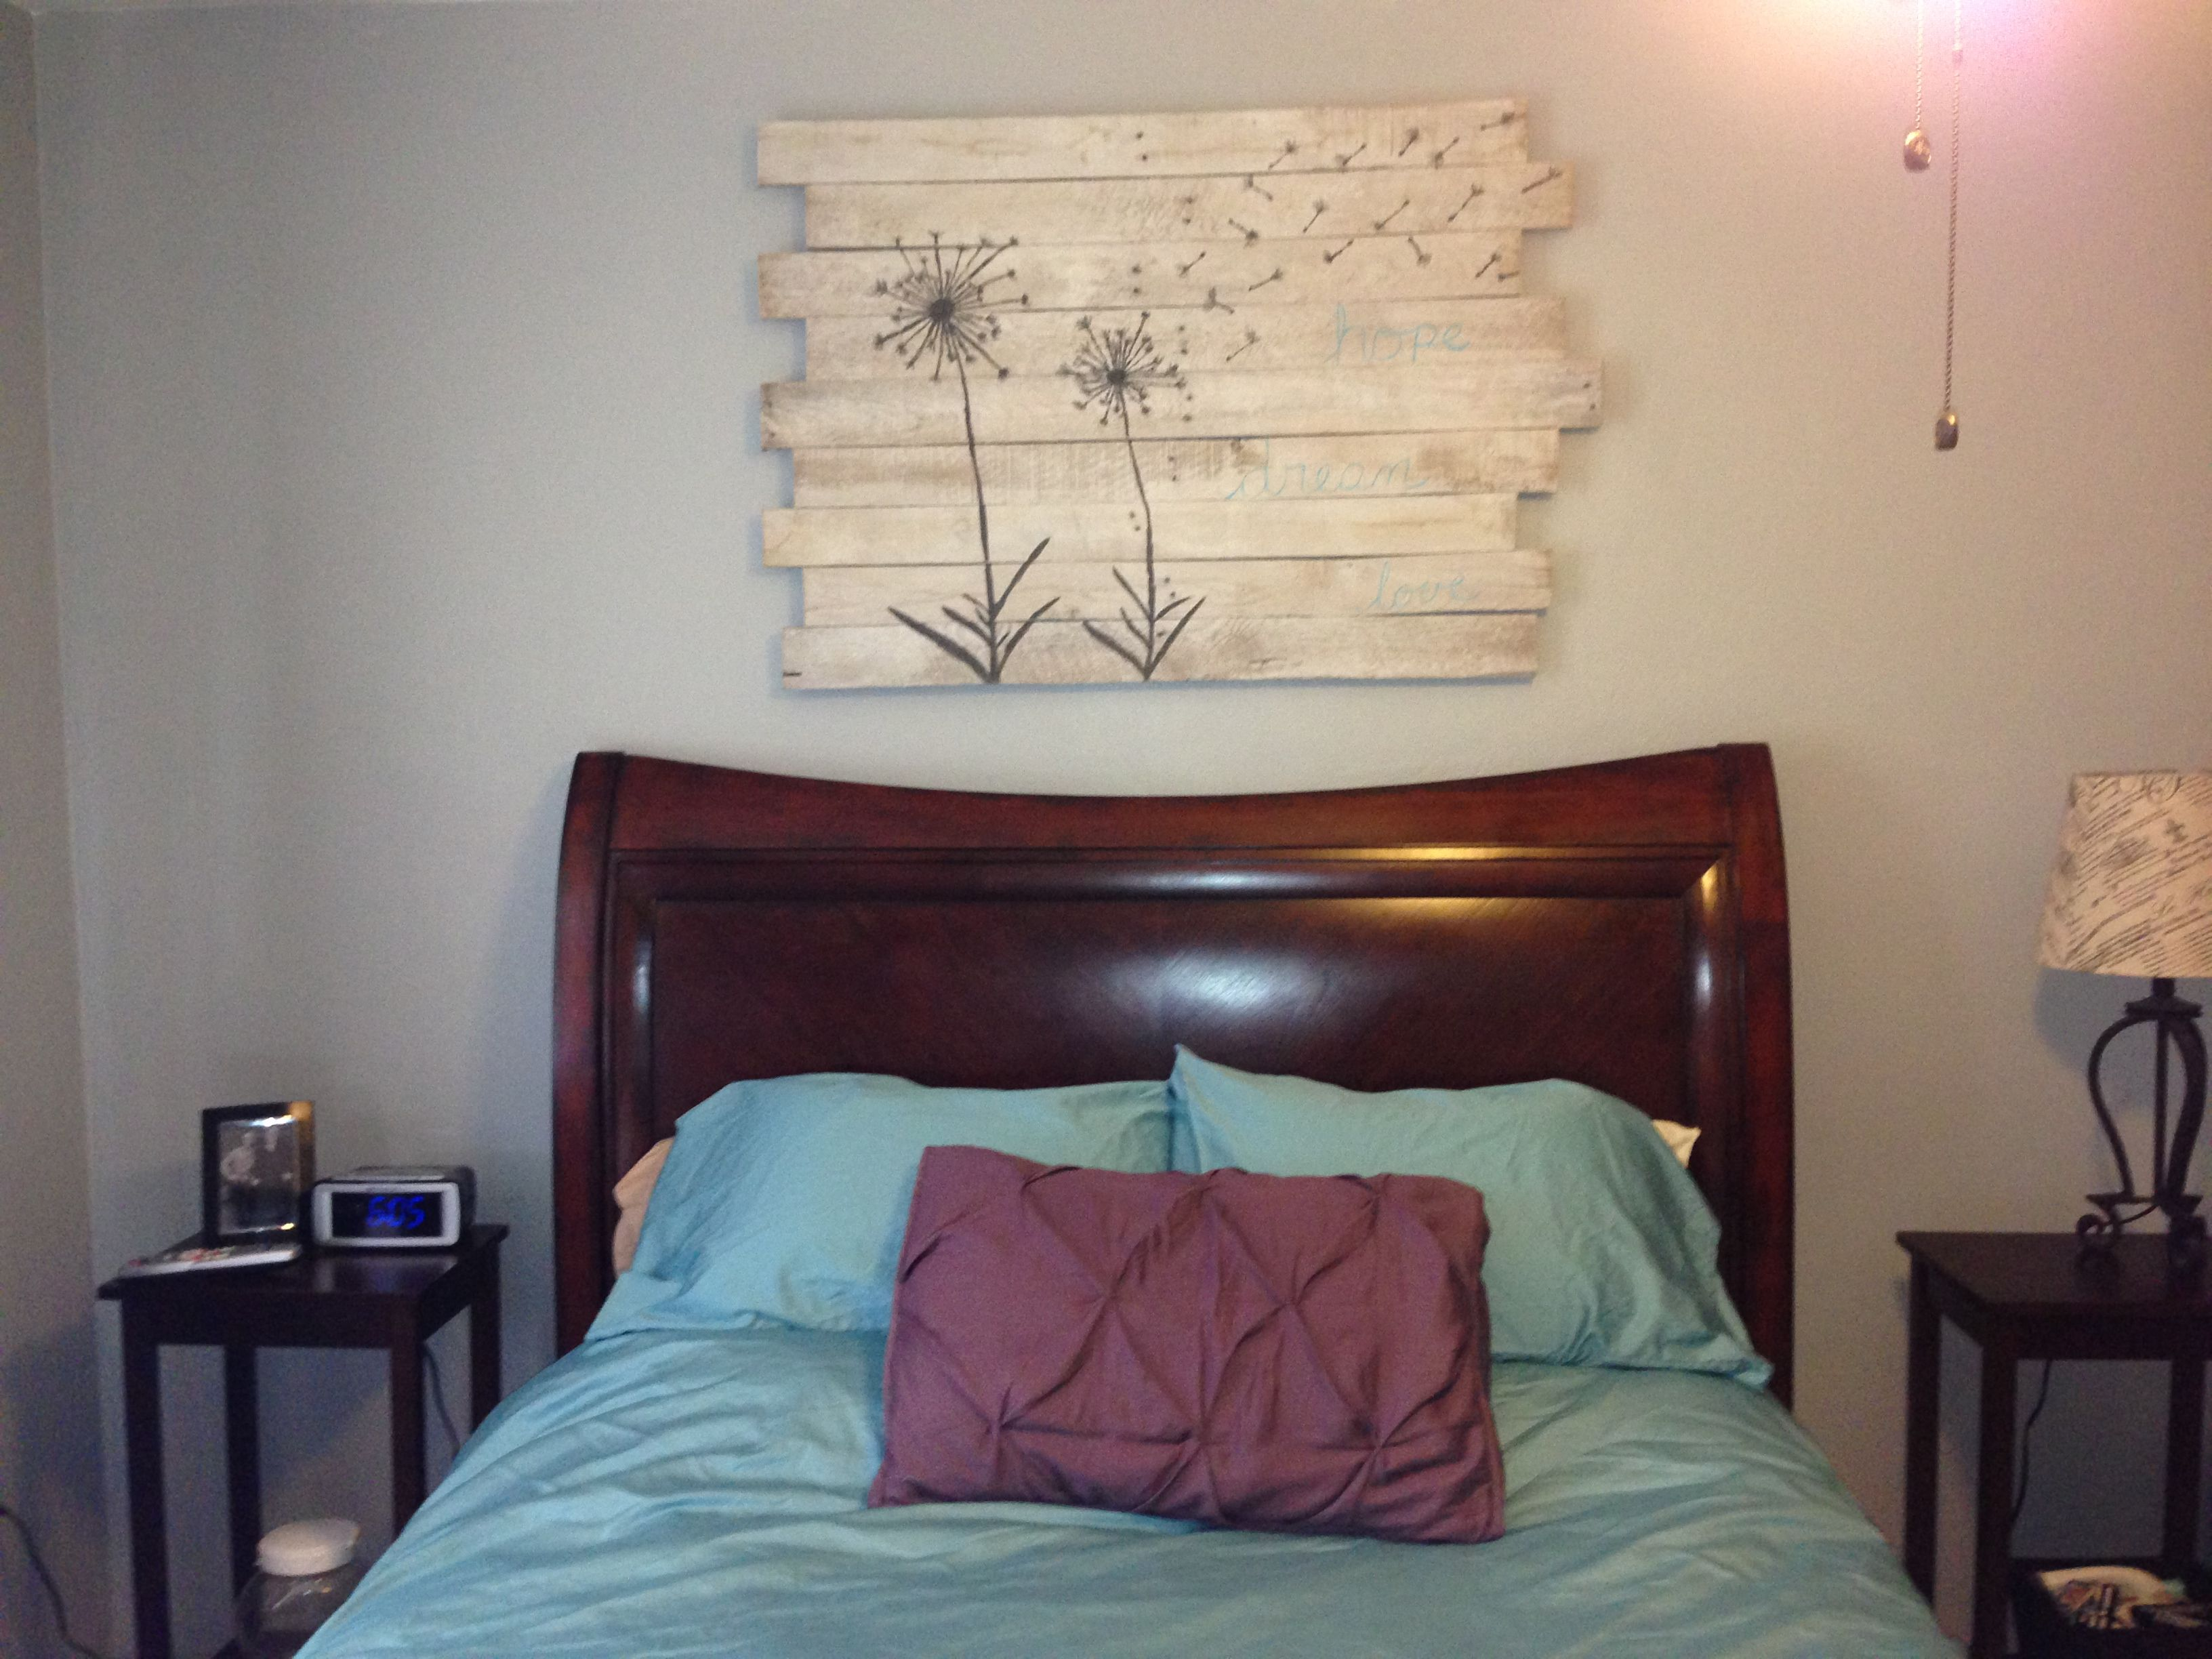 New Artwork Above Headboard For The Home Pinterest